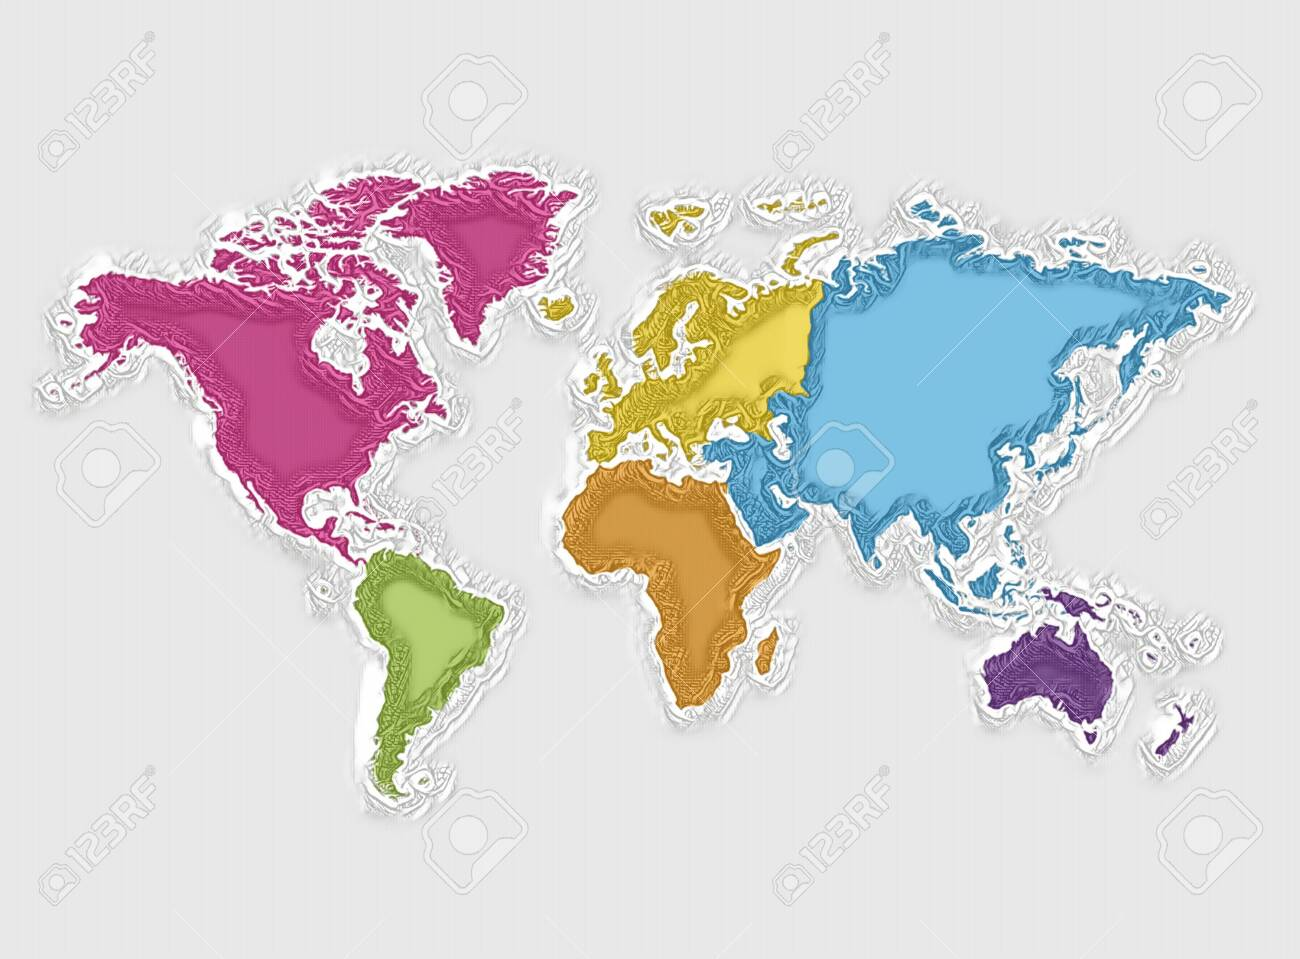 World map and colorful continents, abstract texture